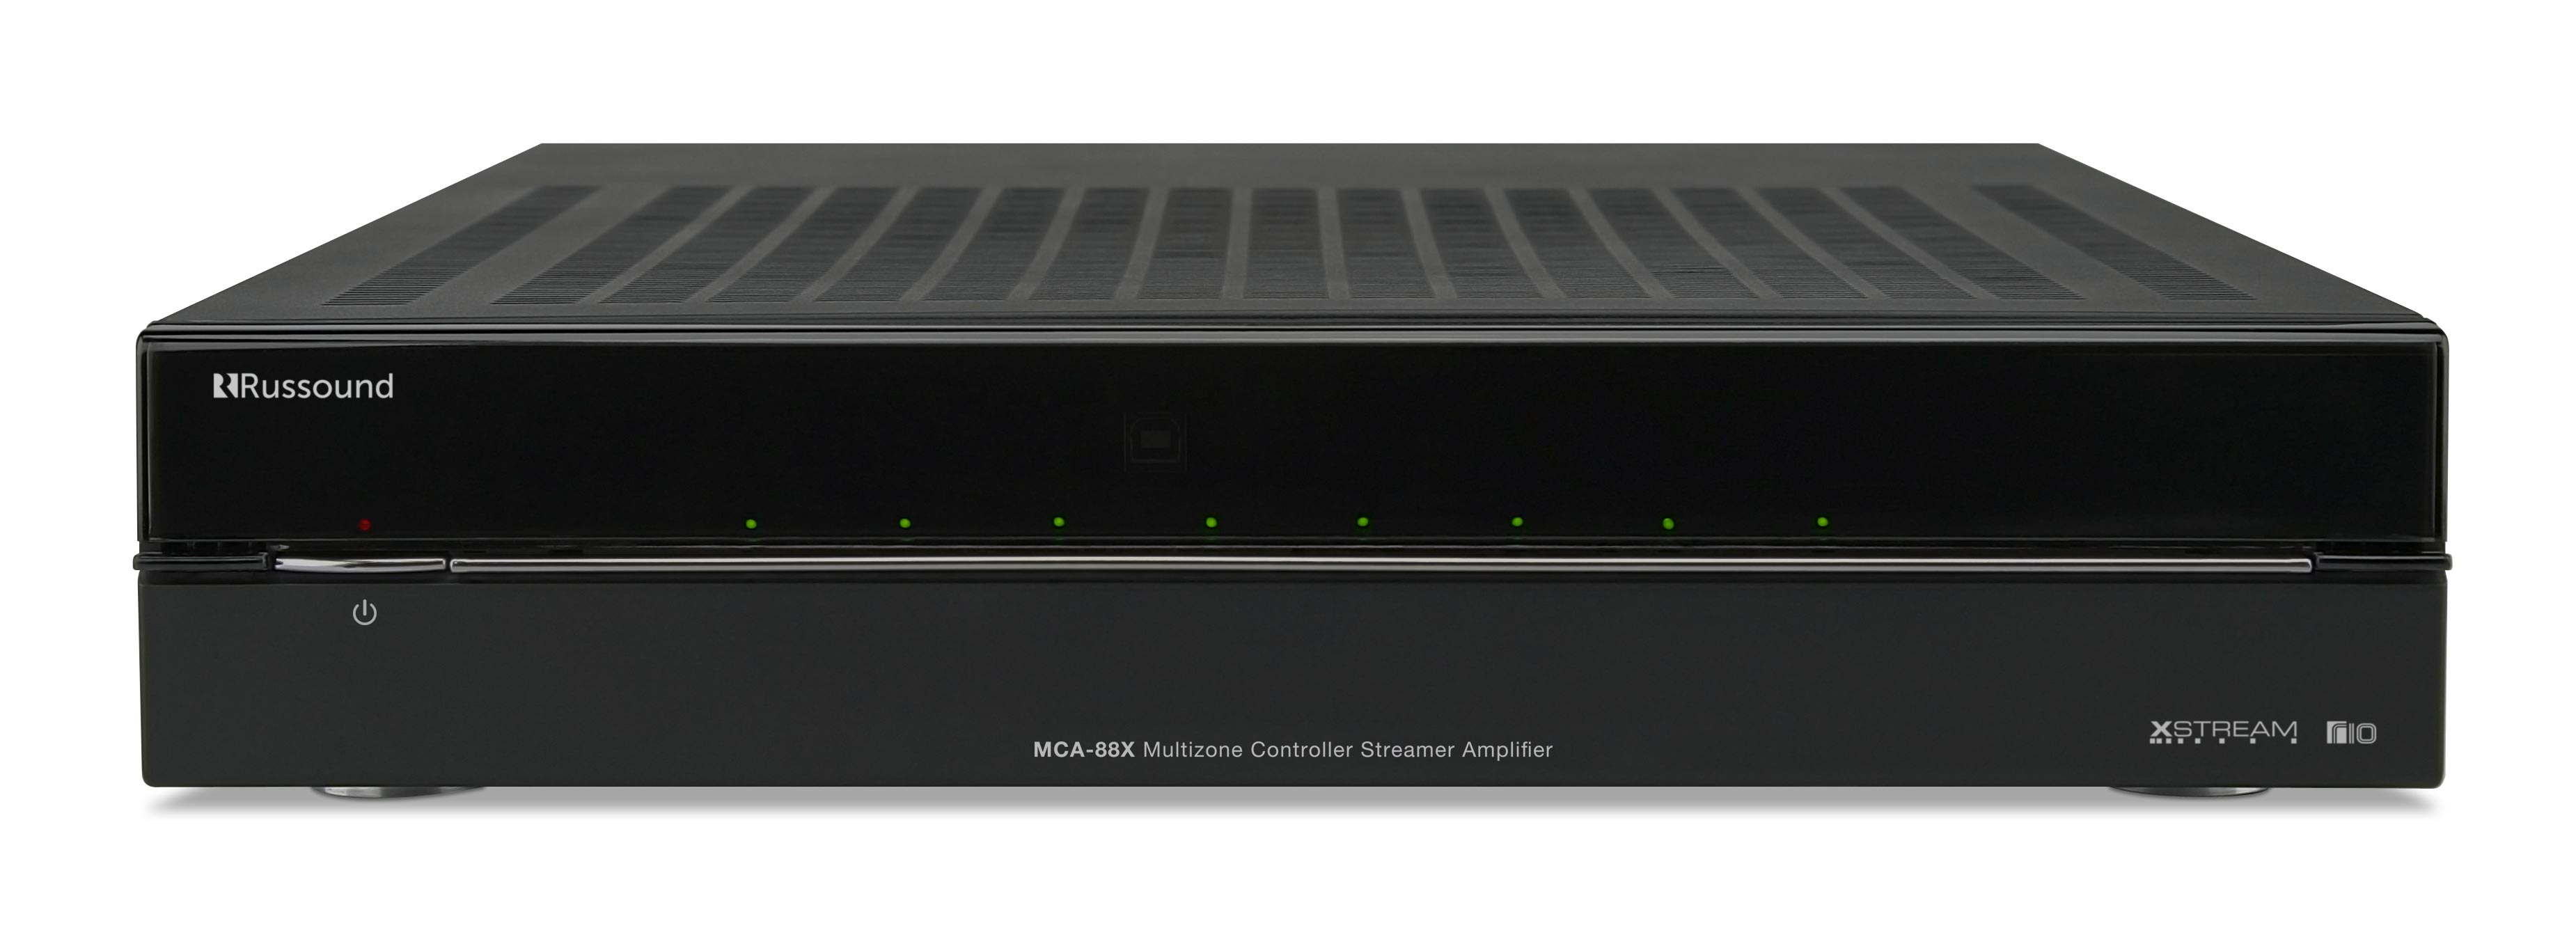 Russound - Contrôleur streaming multi-zone avancé MCA88X